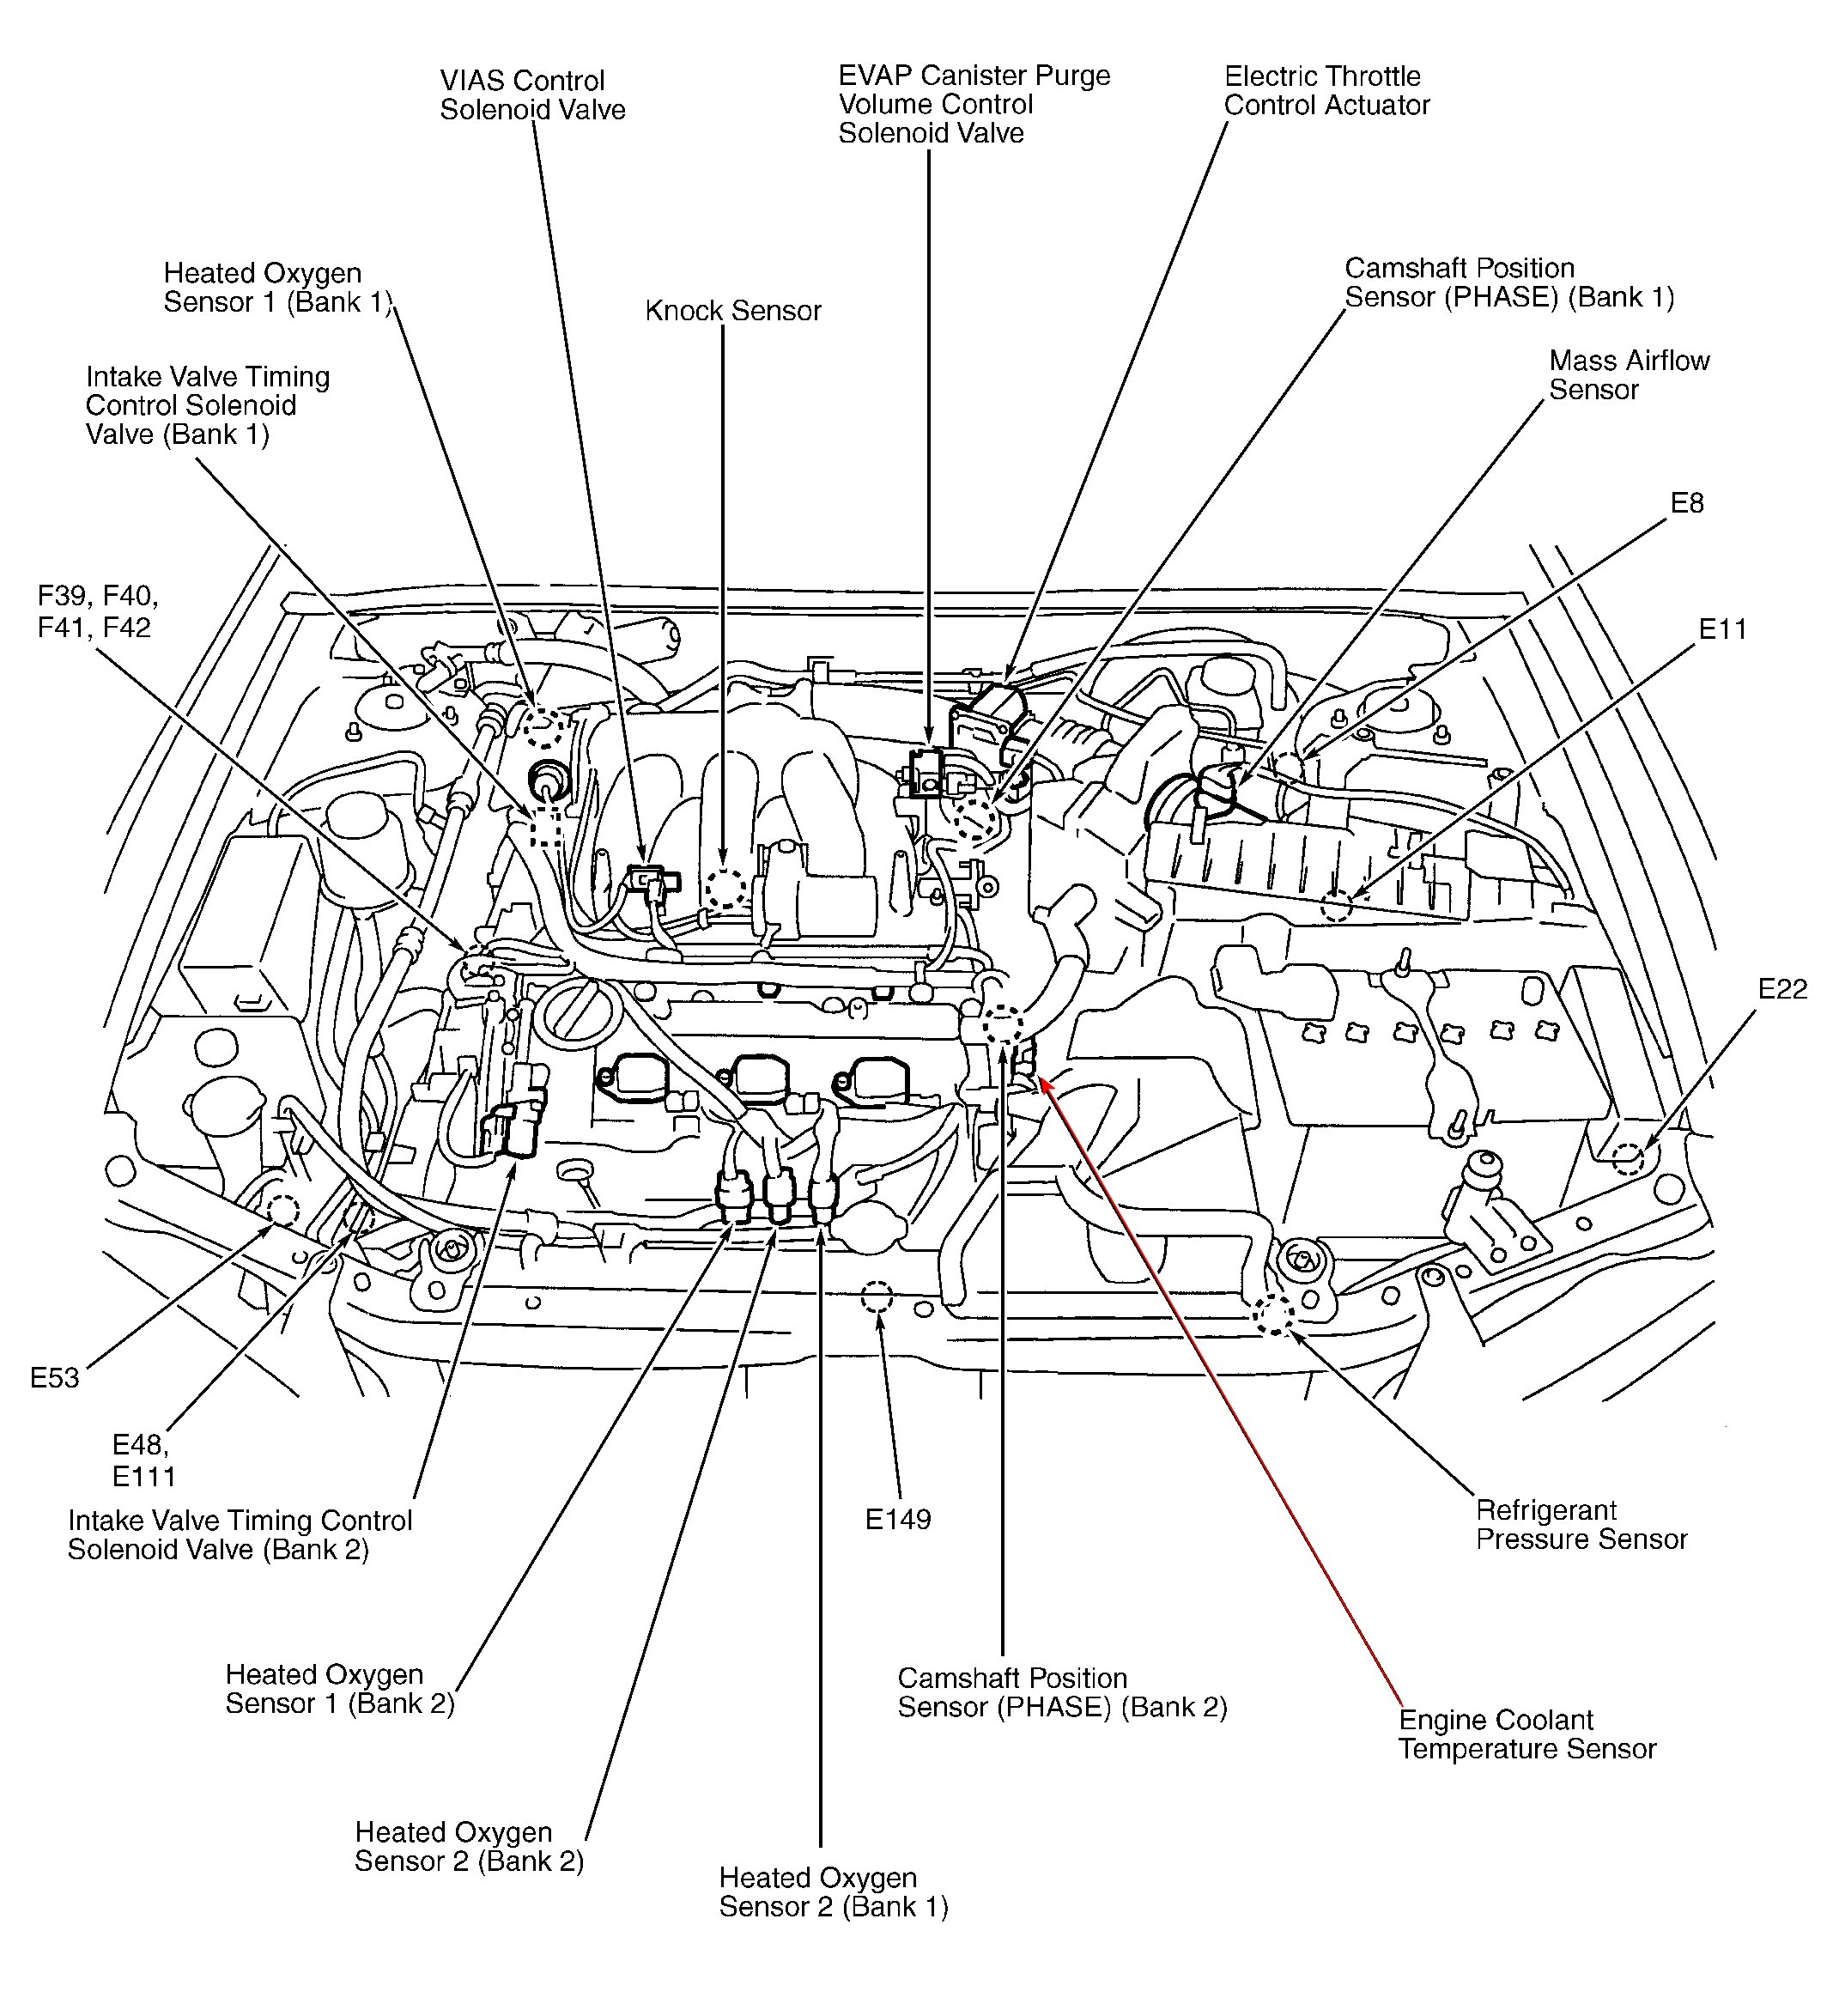 2002 Nissan Xterra Engine Diagram 2005 Nissan Pathfinder Engine Diagram Wiring Diagram Paper Of 2002 Nissan Xterra Engine Diagram 2006 Nissan Altima Relay Diagram Including 2003 Nissan Xterra Air